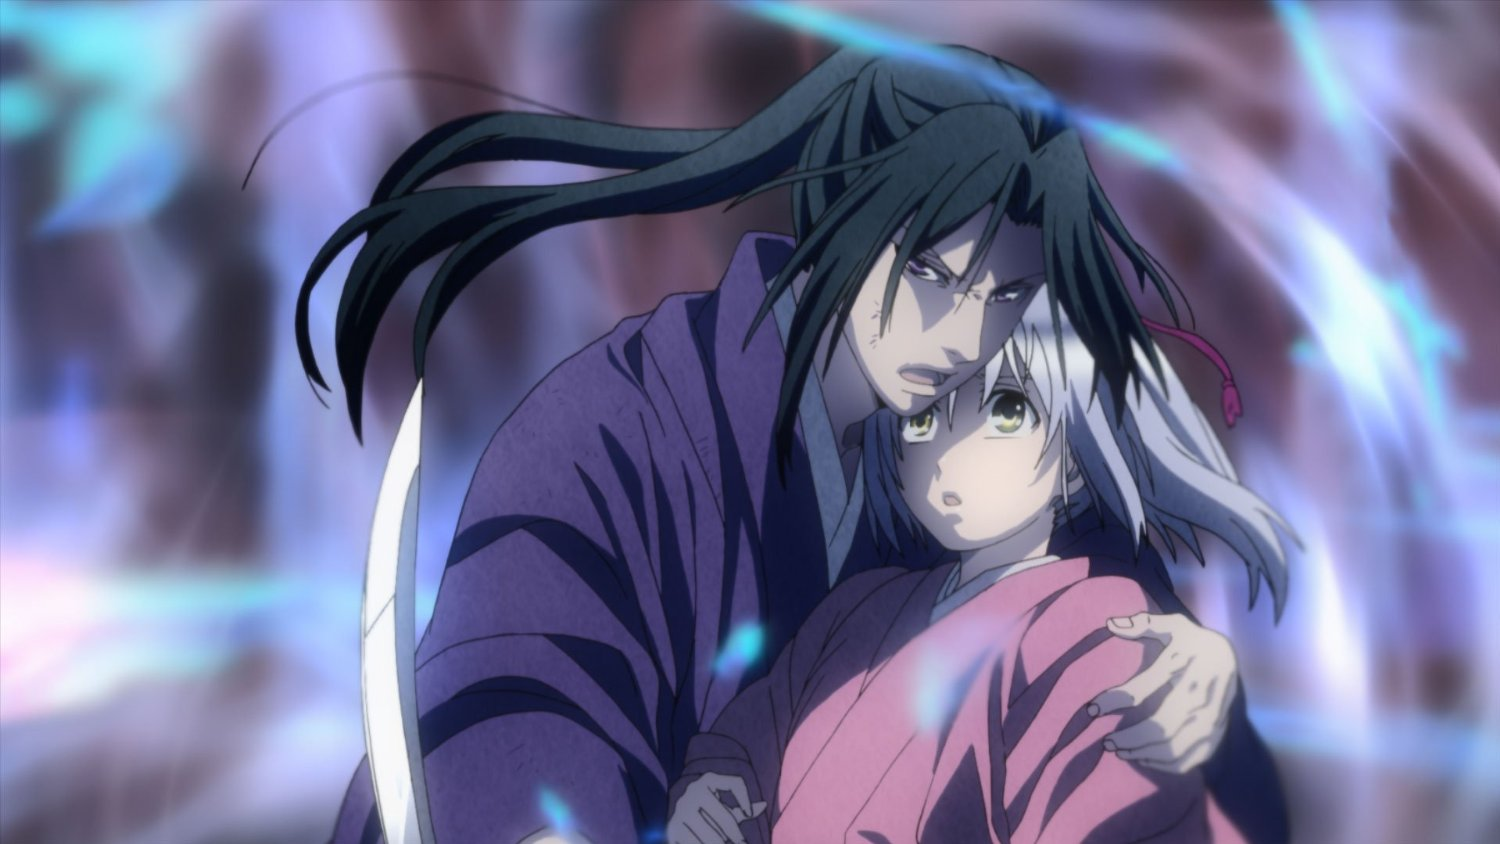 Hakuoki: Demon Of The Fleeting Blossom Backgrounds, Compatible - PC, Mobile, Gadgets| 1500x844 px